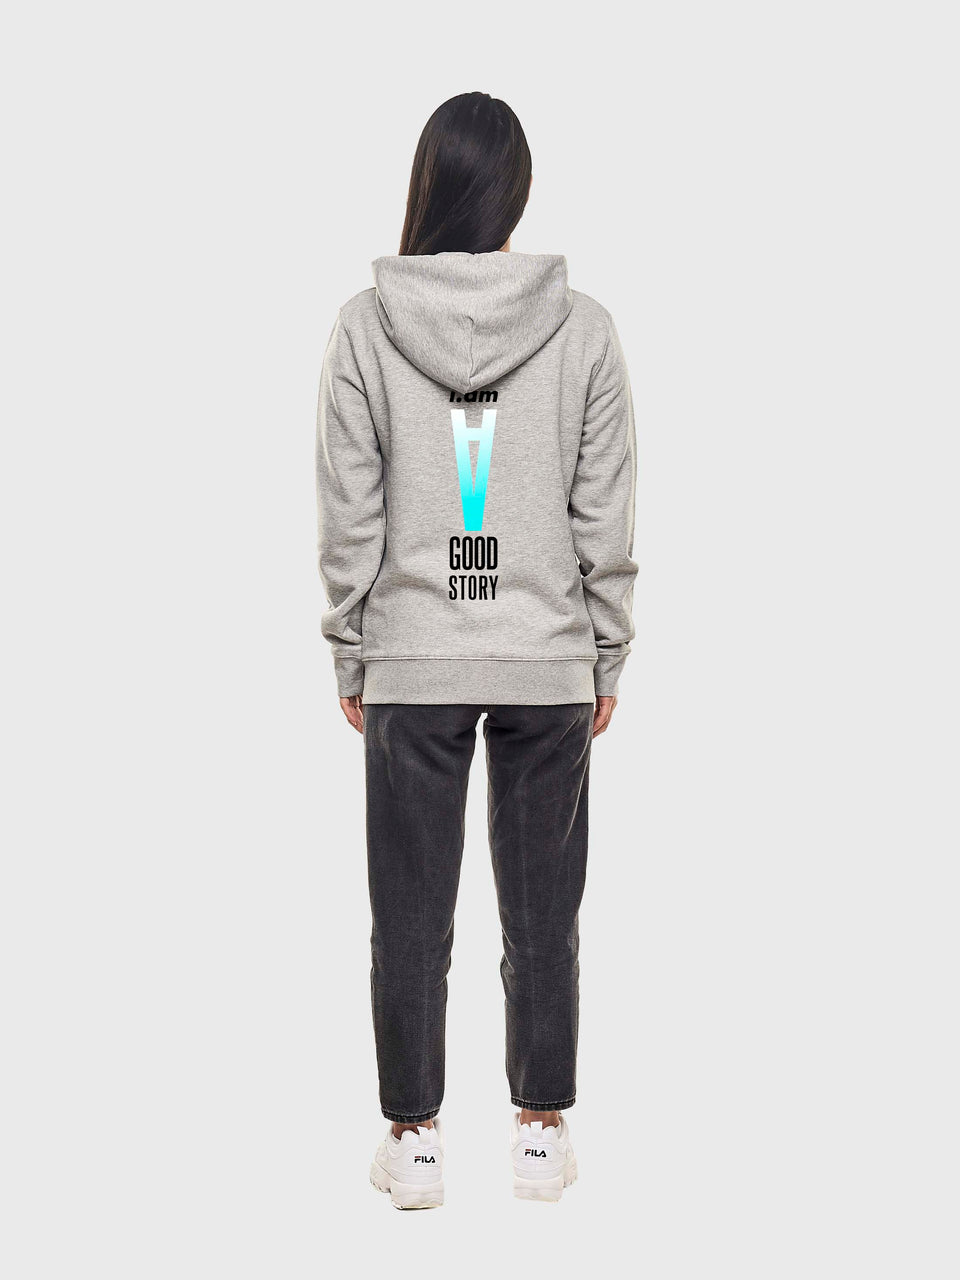 A good story - Grey - Unisex zip up hoodie